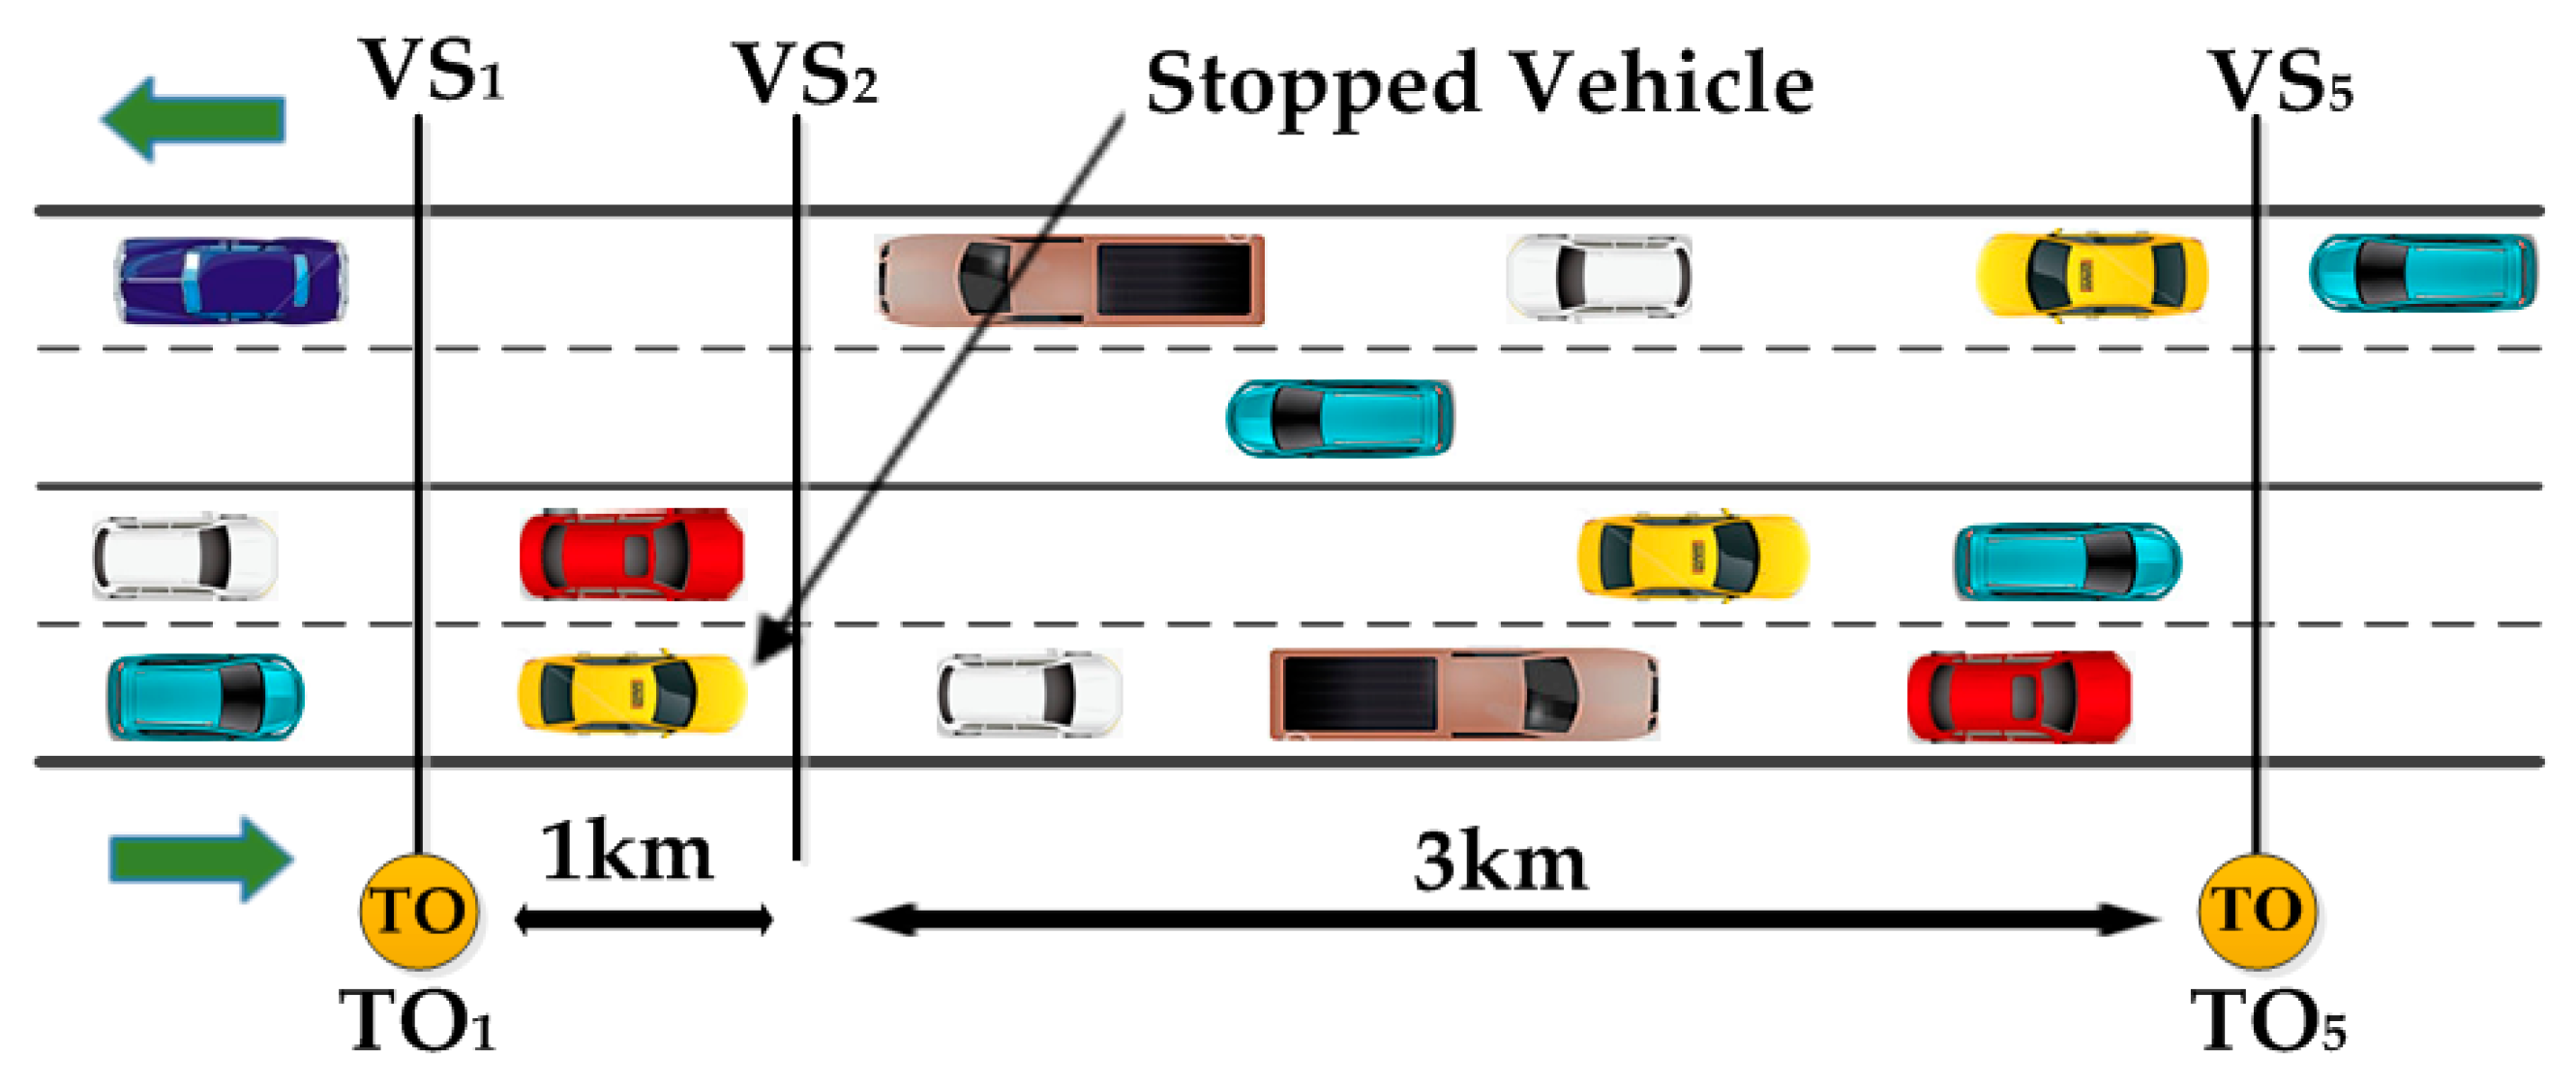 Sensors Free Full Text A Survey On Urban Traffic Management Intelligent Controller With Block Diagram 16 00157 G006 1024